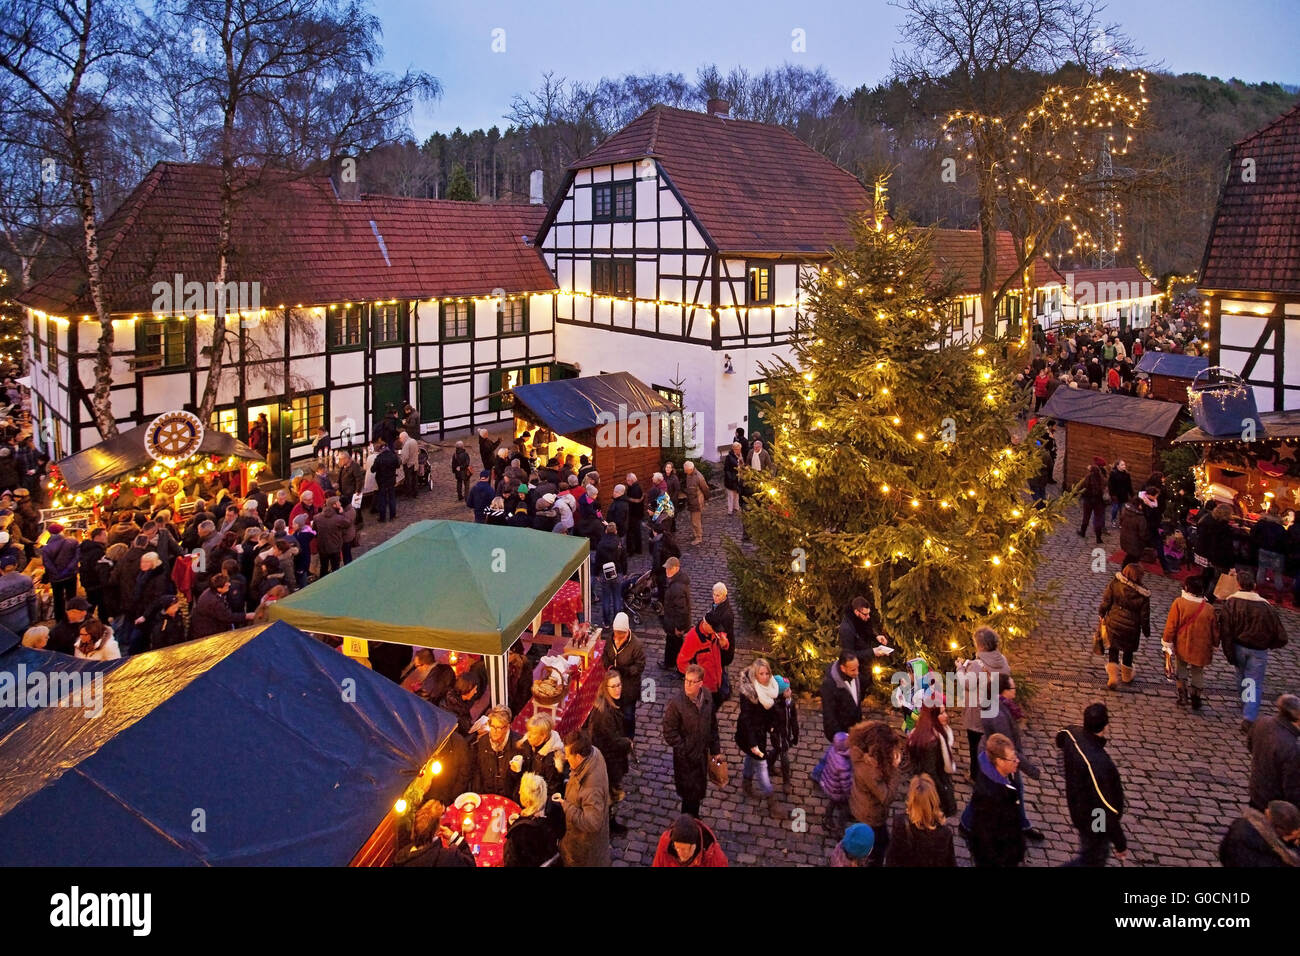 Iserlohn Weihnachtsmarkt.Christmas Market At Maste Barendorf Iserlohn Stock Photo 103542137